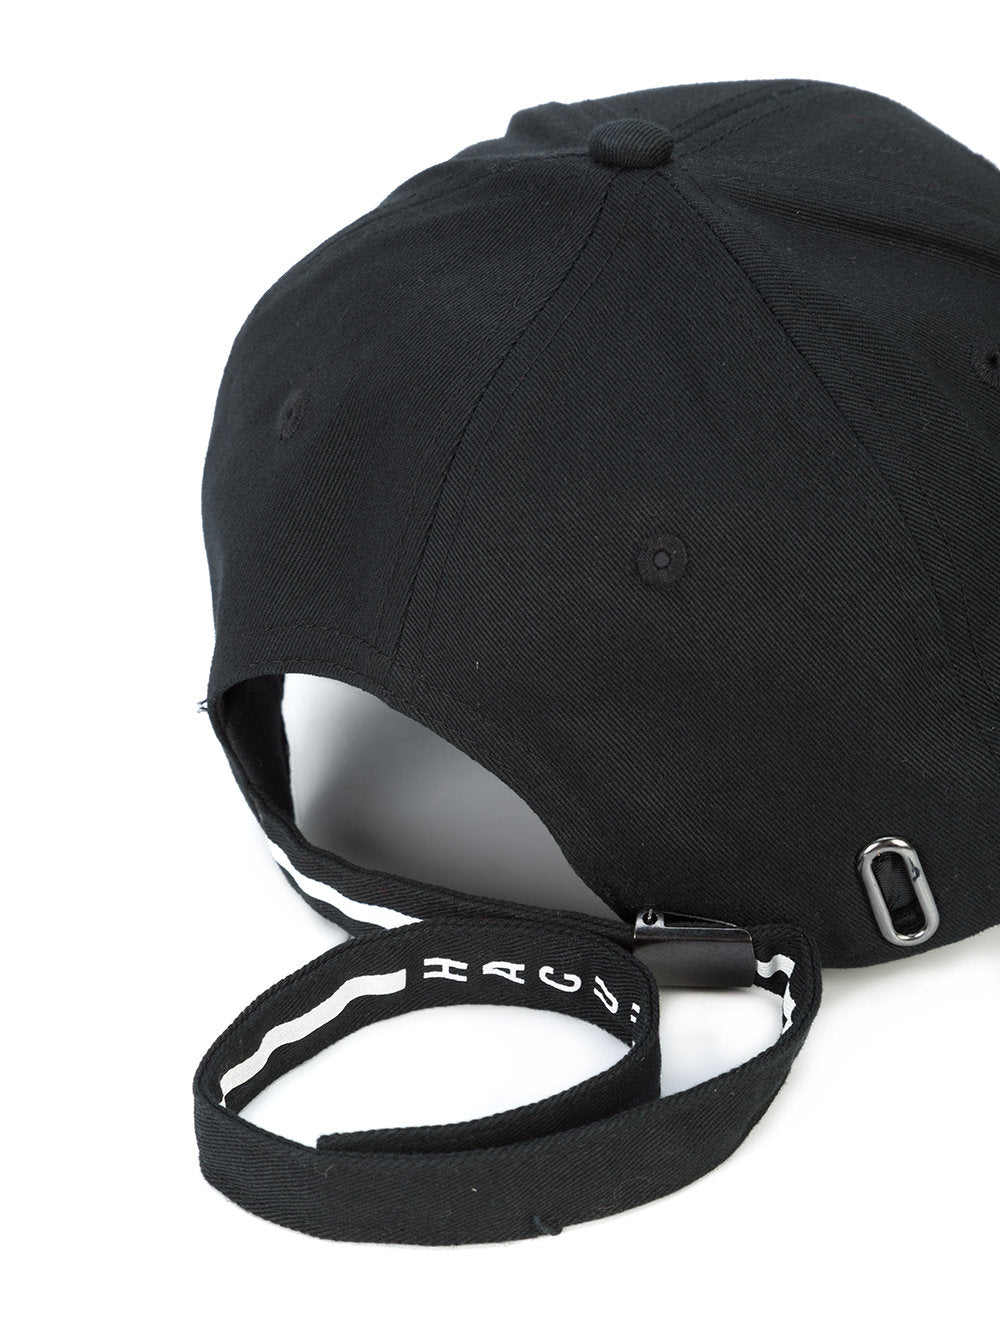 TRIANGLE PATCH BLACK LONG STRAP DAD HAT ... b78a432ed78